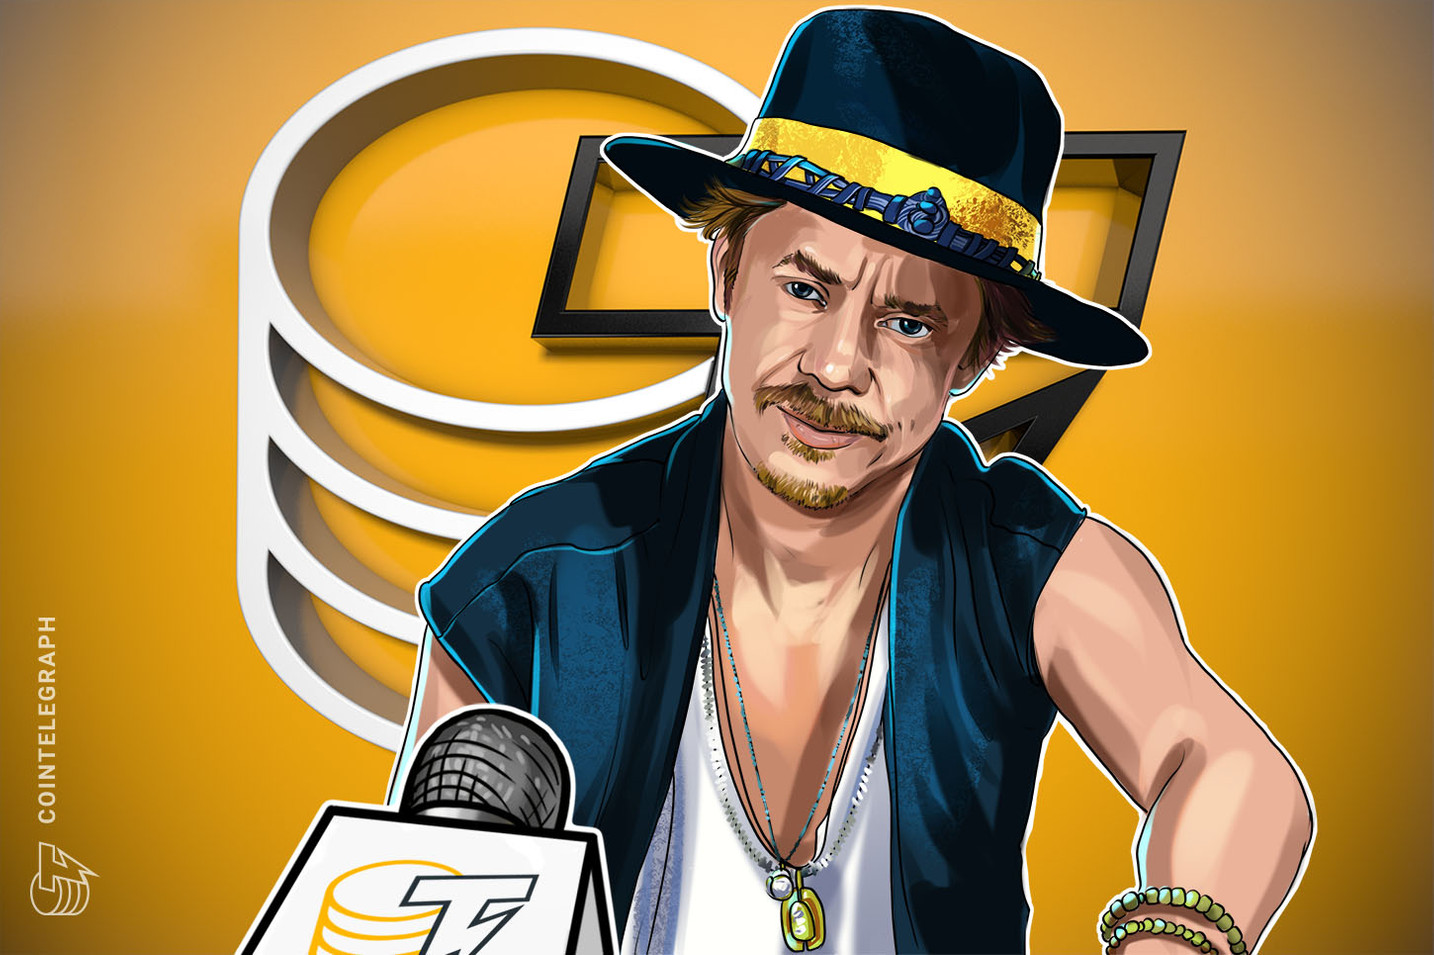 'You Don't Have to Win to Become President': Candidate Brock Pierce